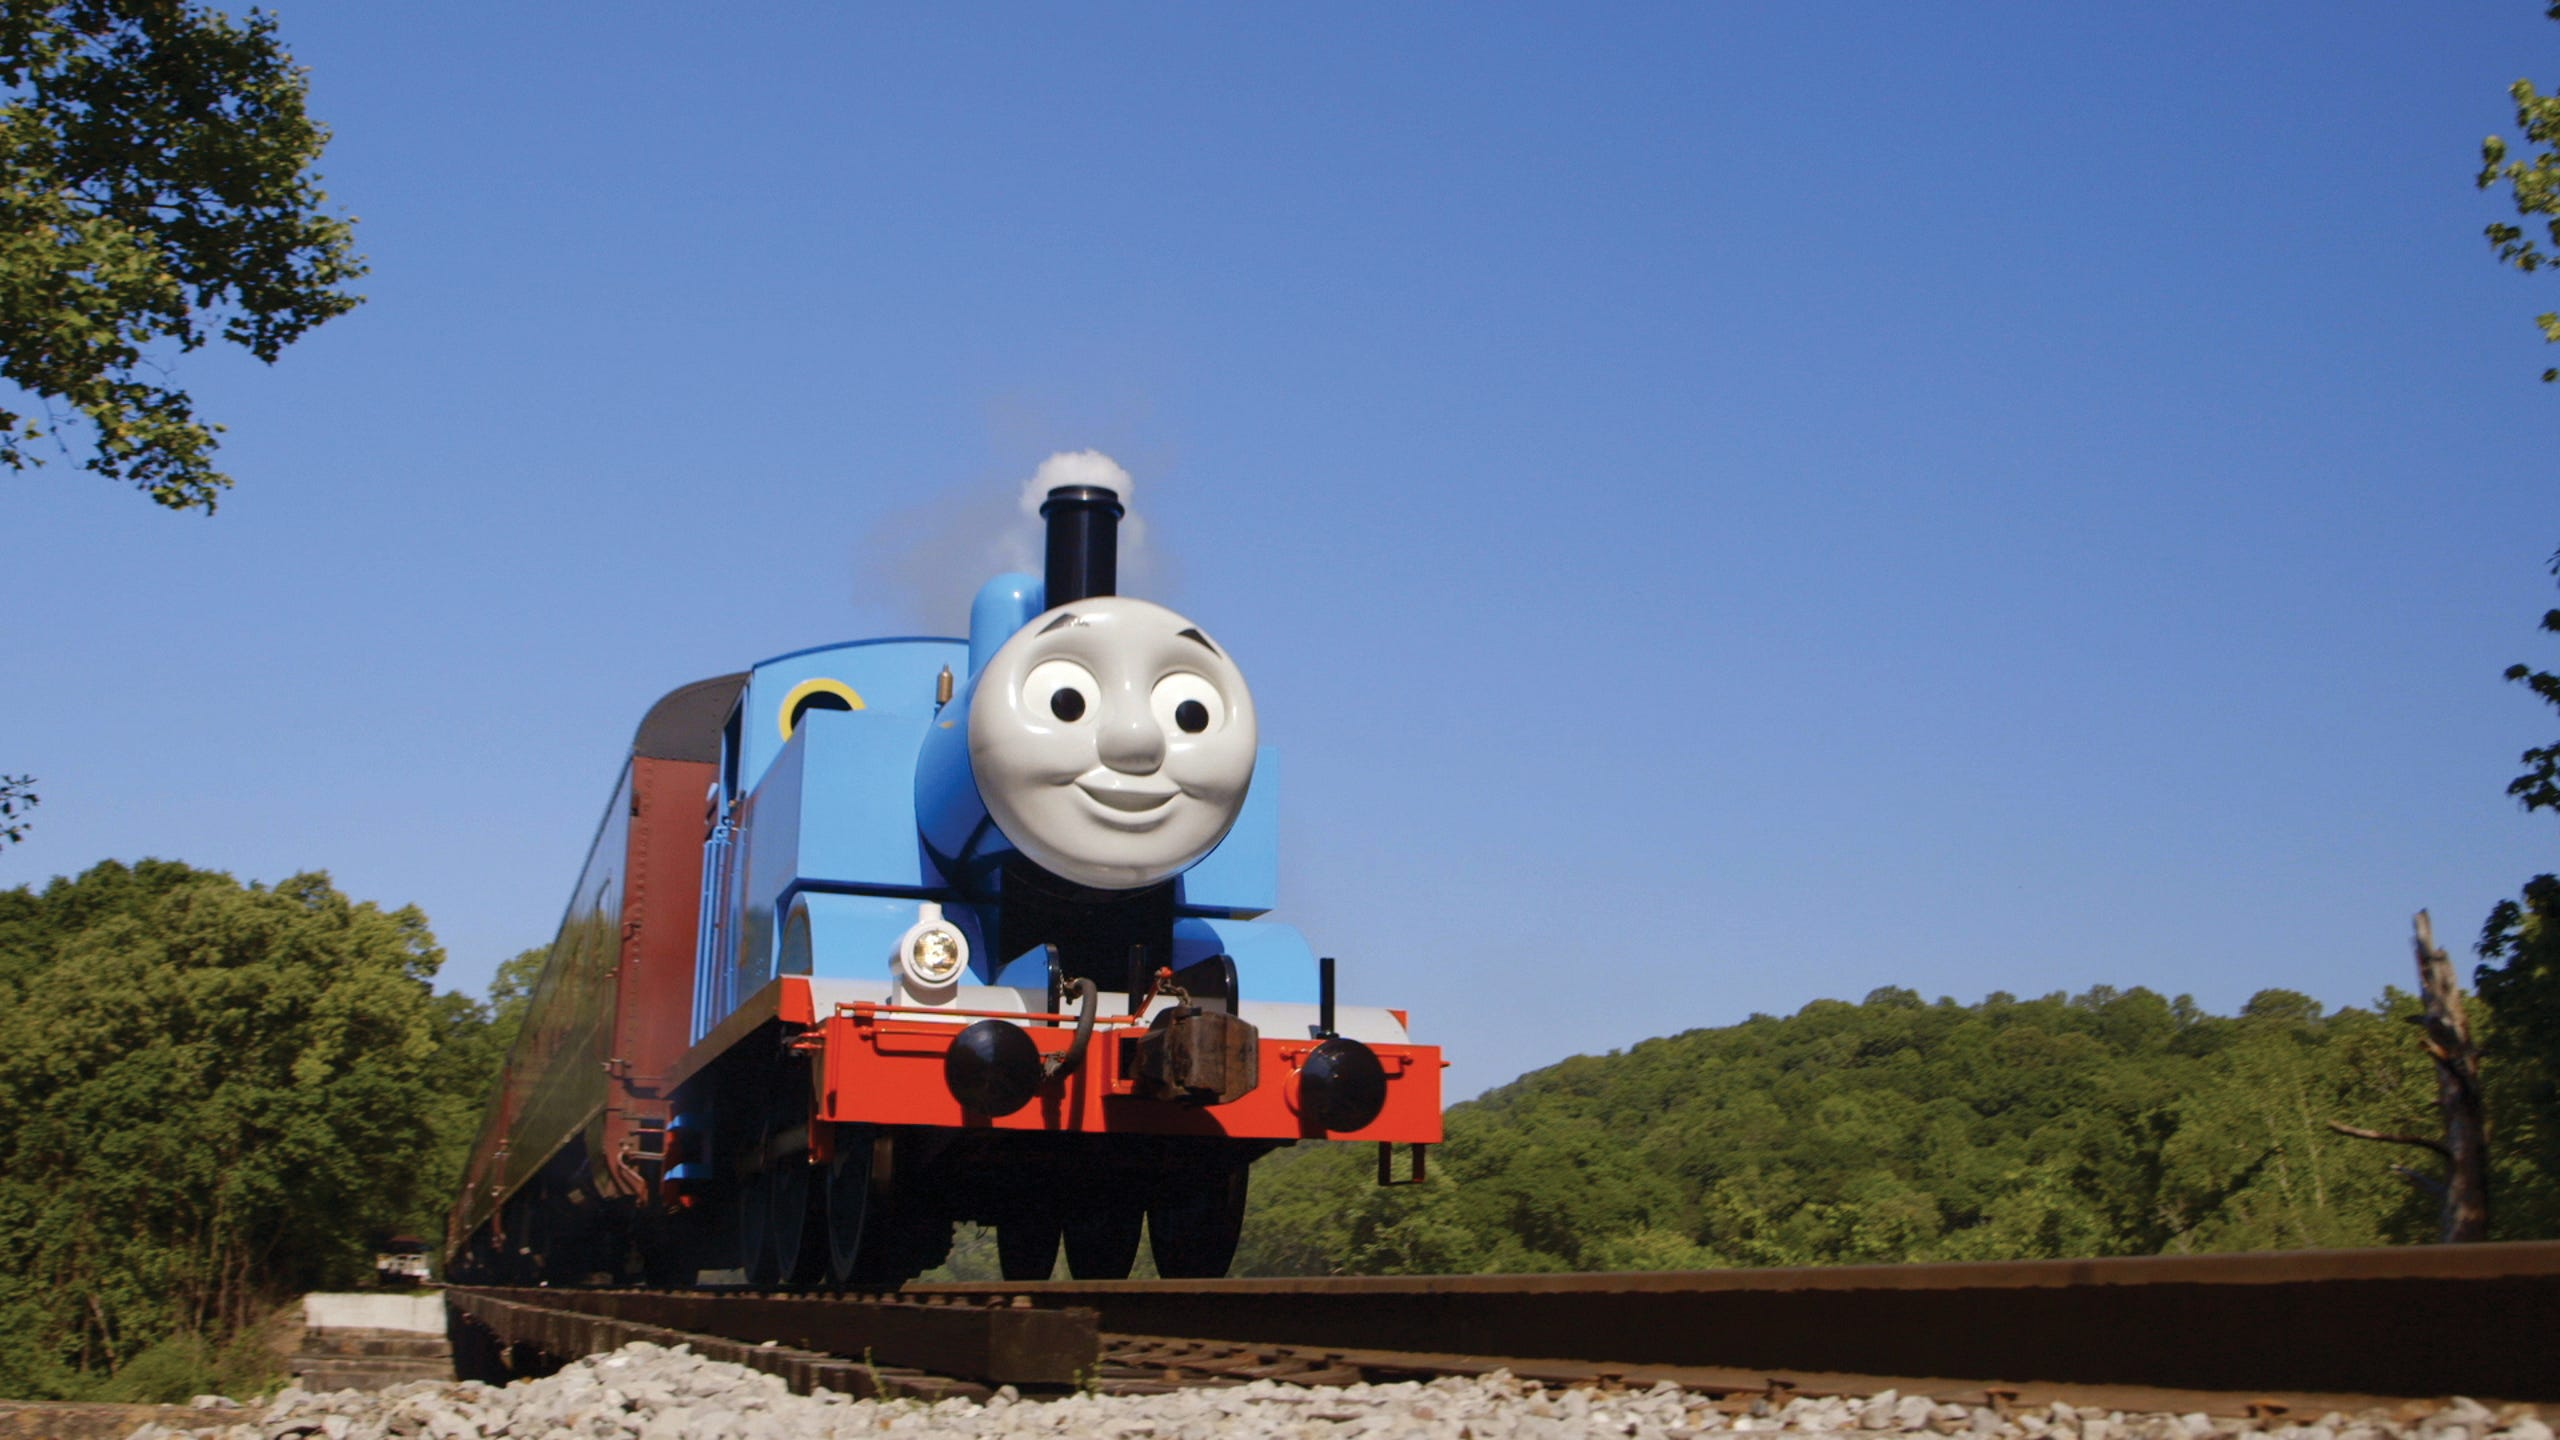 Kennywood Welcomes Thomas The Tank Engine